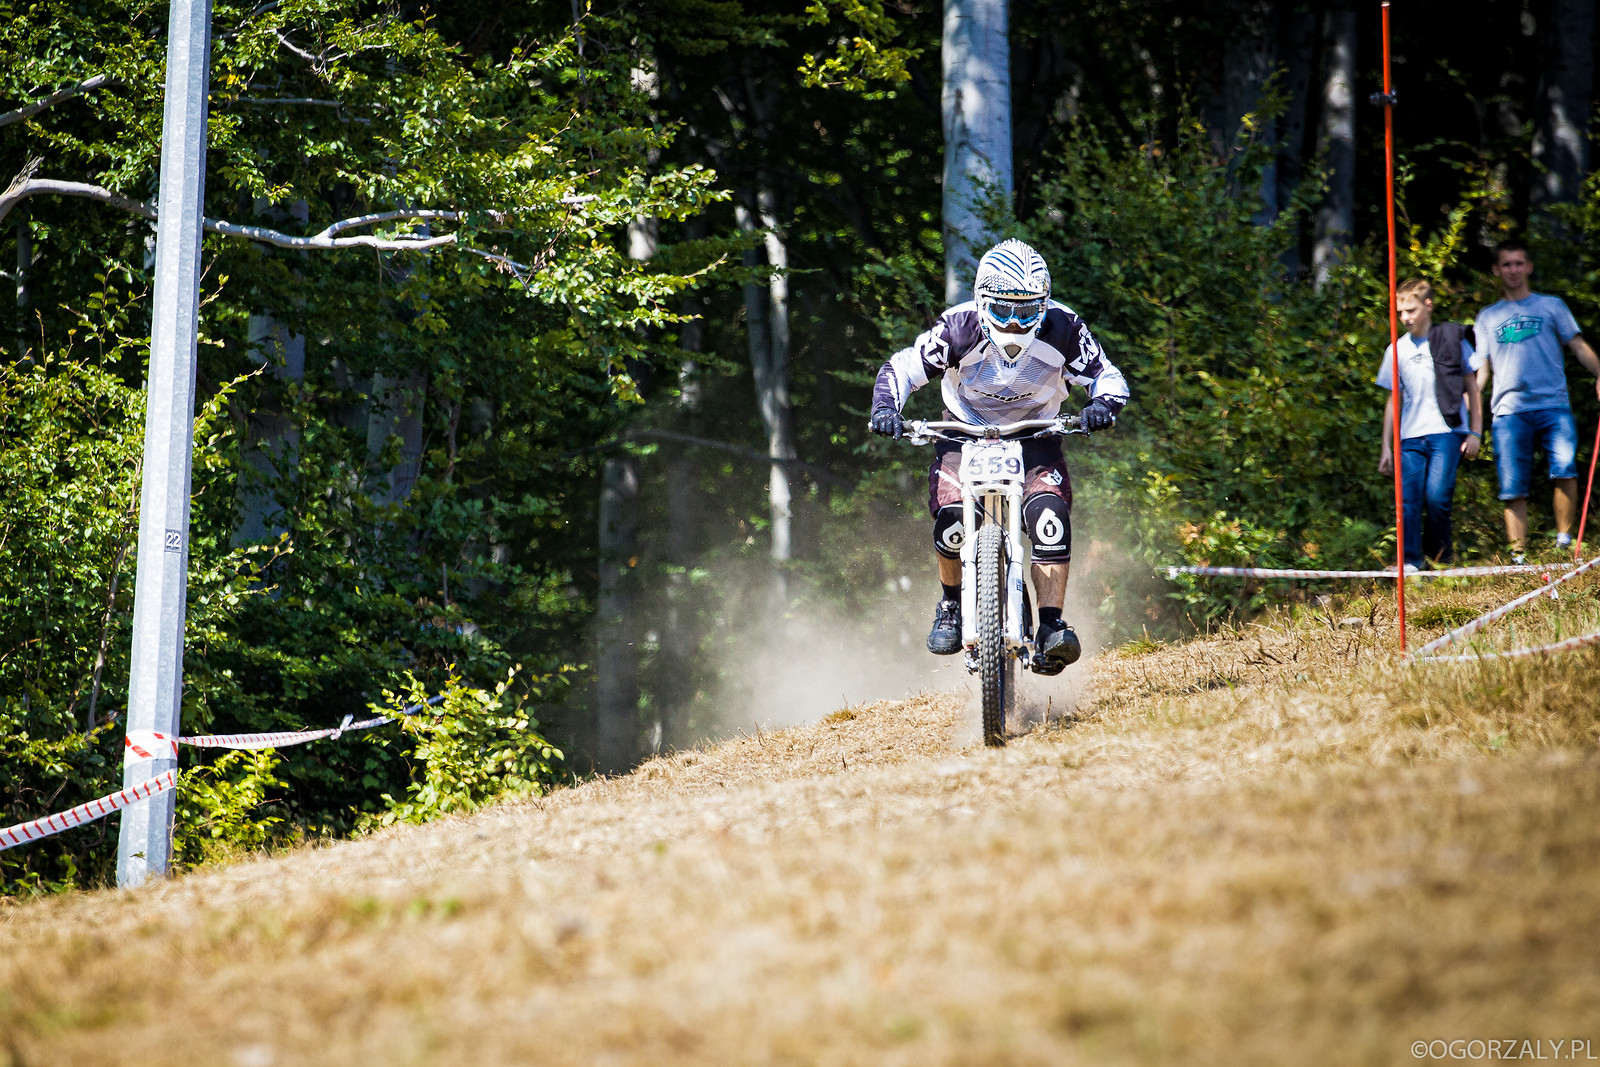 Alone in the dust - adrian.harat - Mountain Biking Pictures - Vital MTB